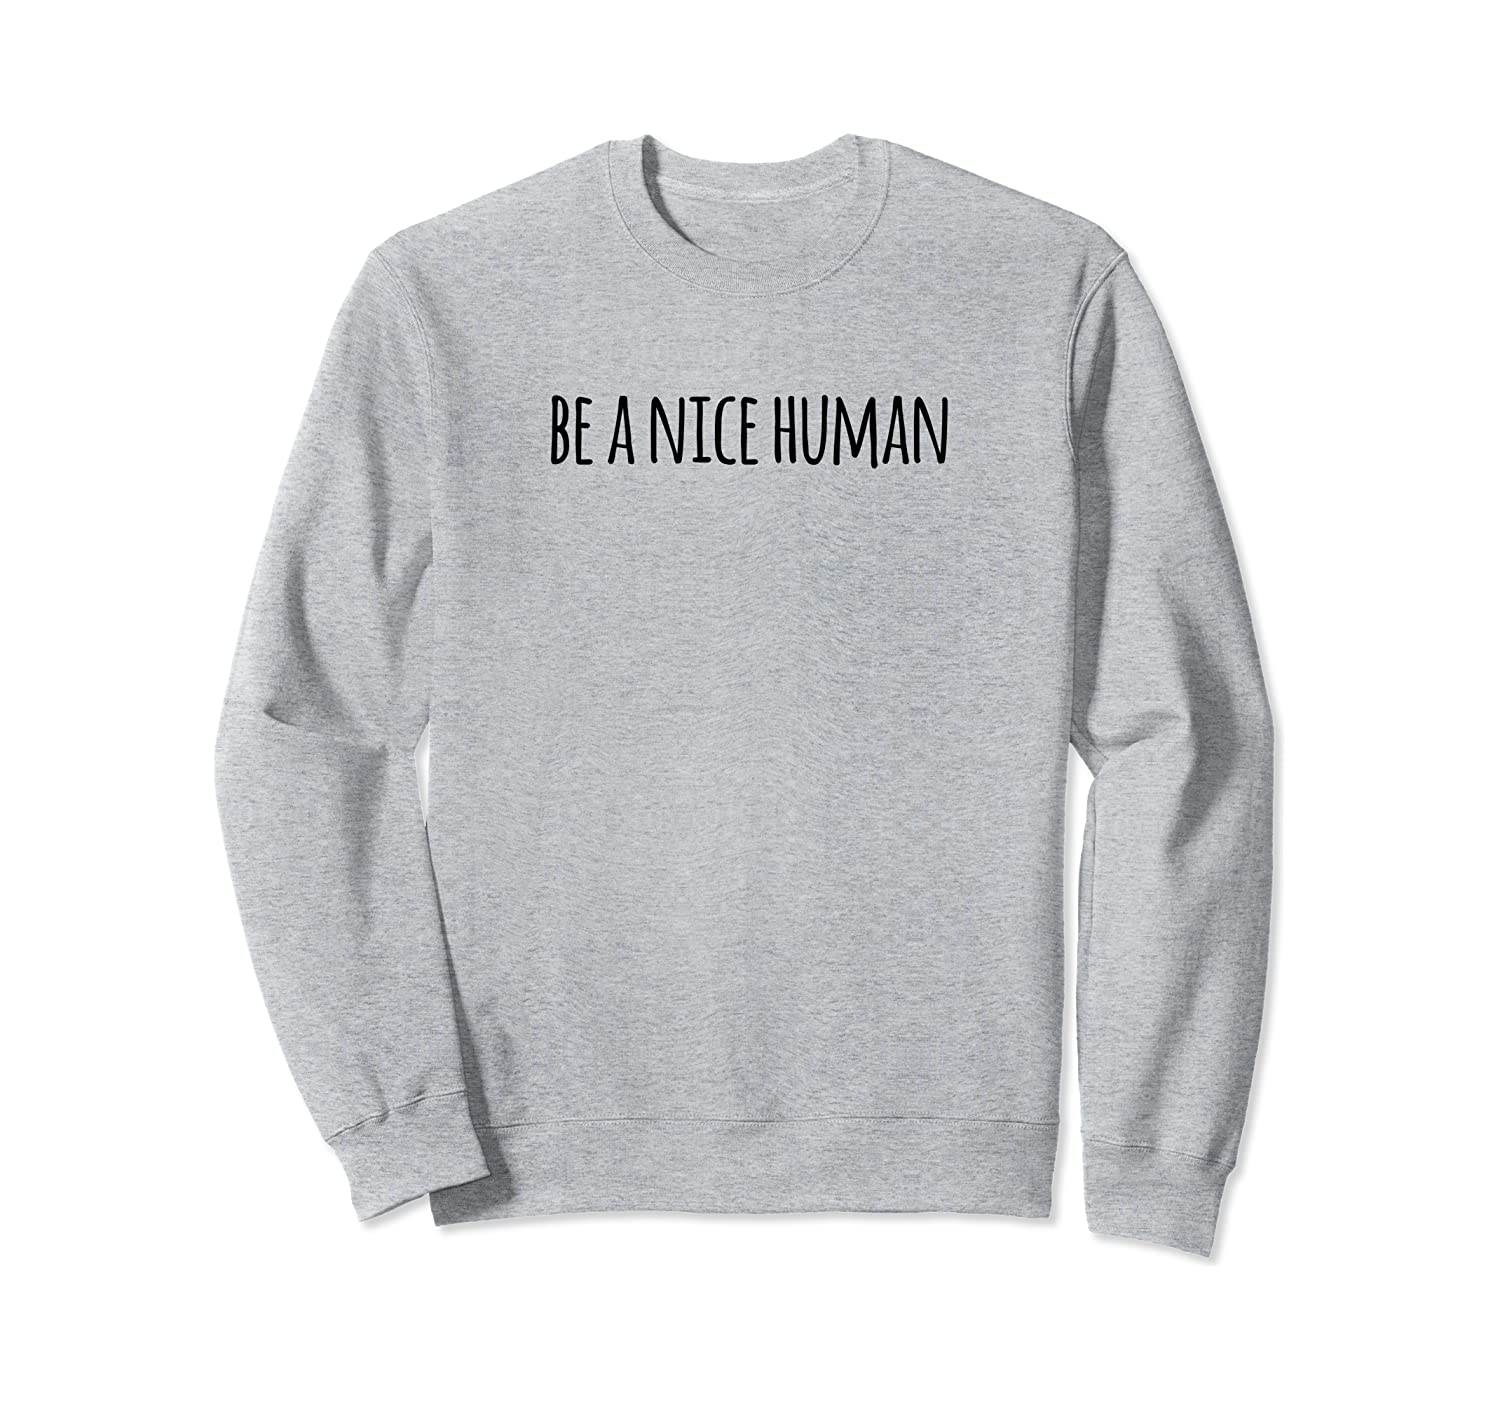 Kindness Gifts Be A Nice Human Sweatshirt